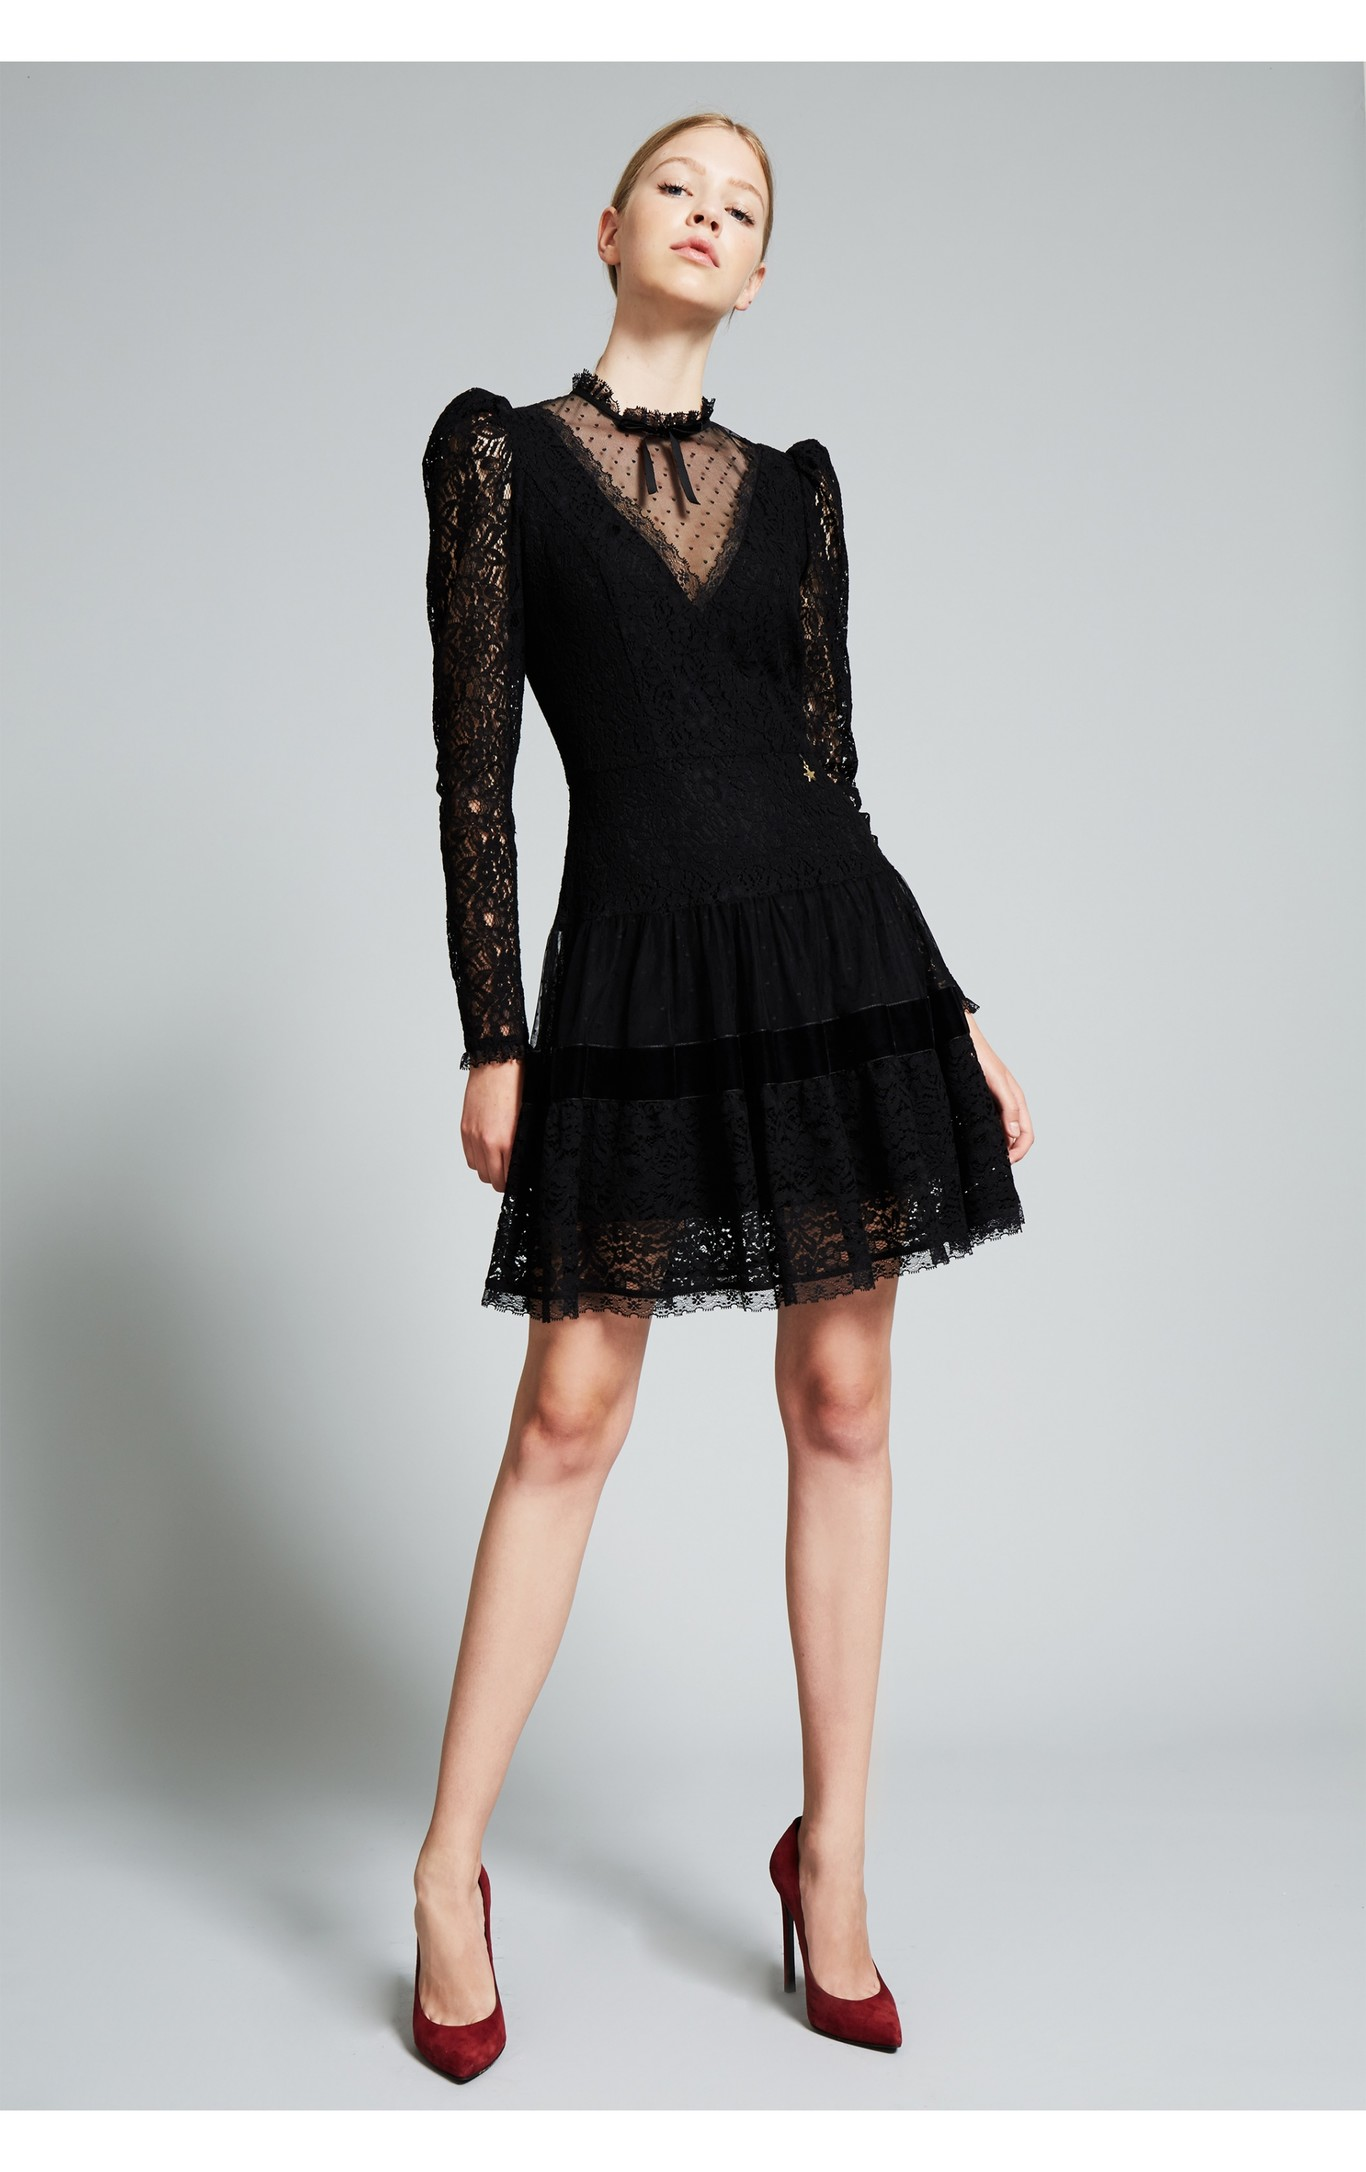 Long Black Party Dresses: a Classic that Never Fails